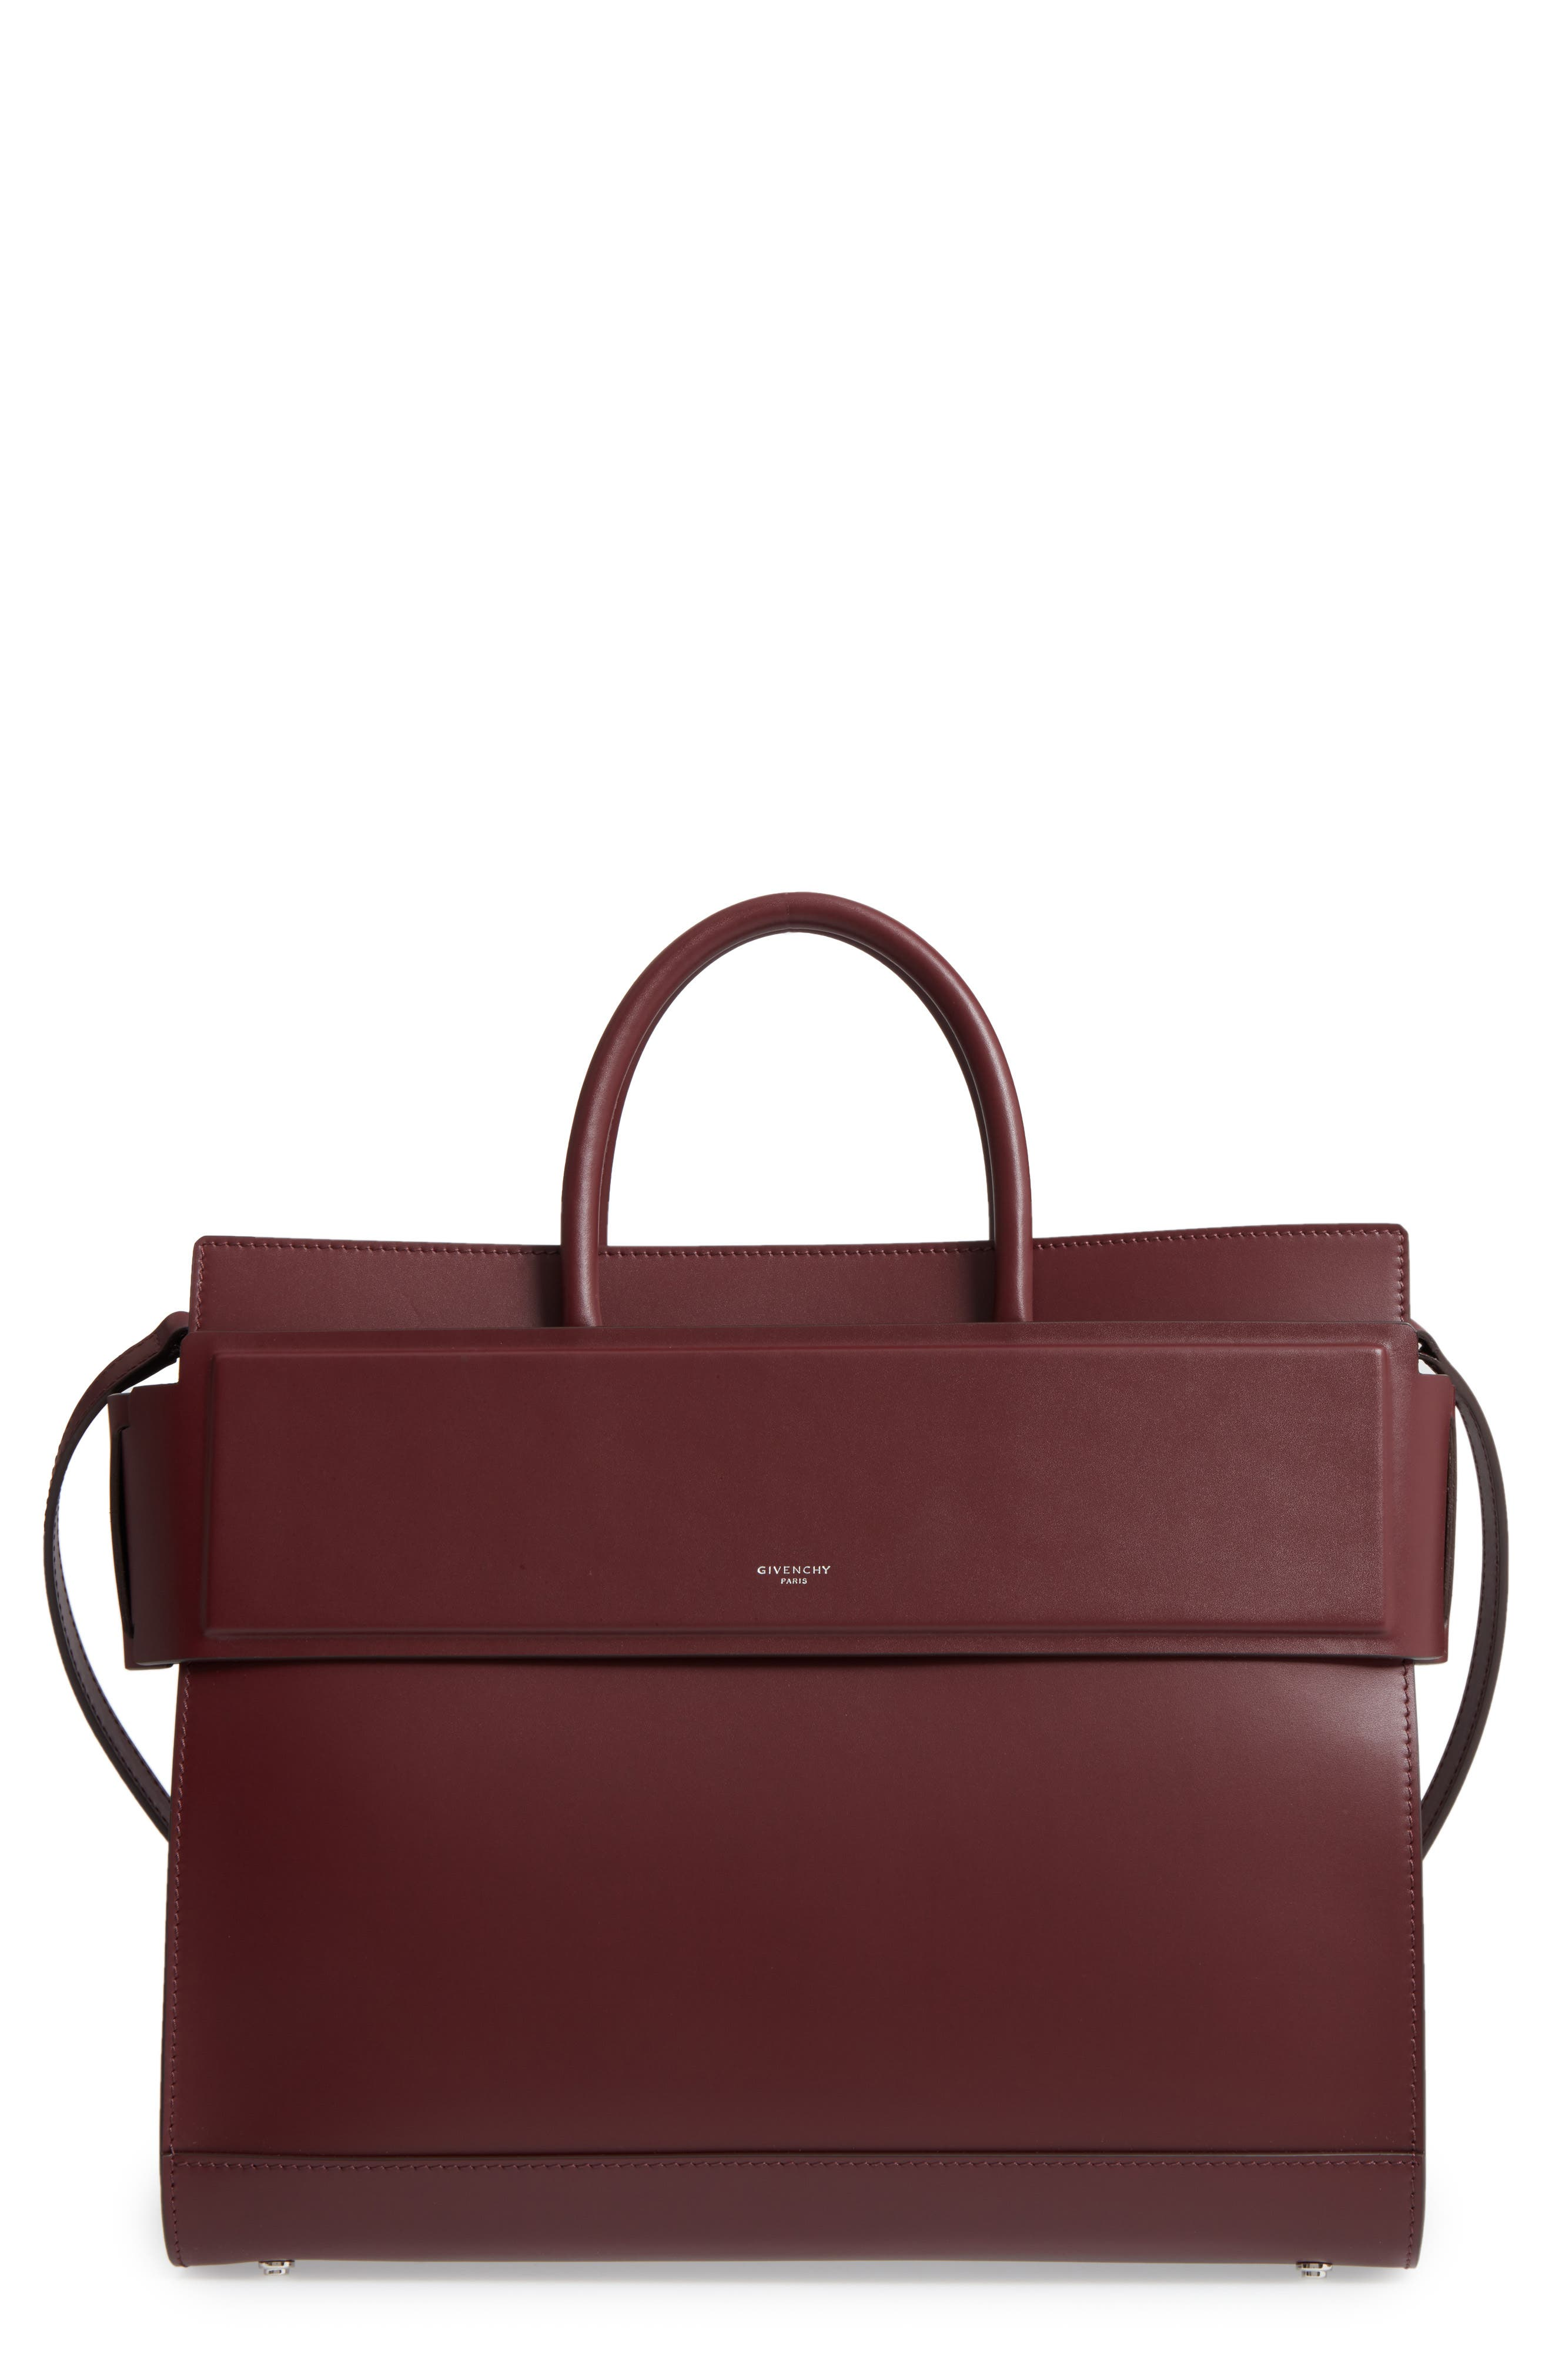 Alternate Image 1 Selected - Givenchy Horizon Calfskin Leather Tote